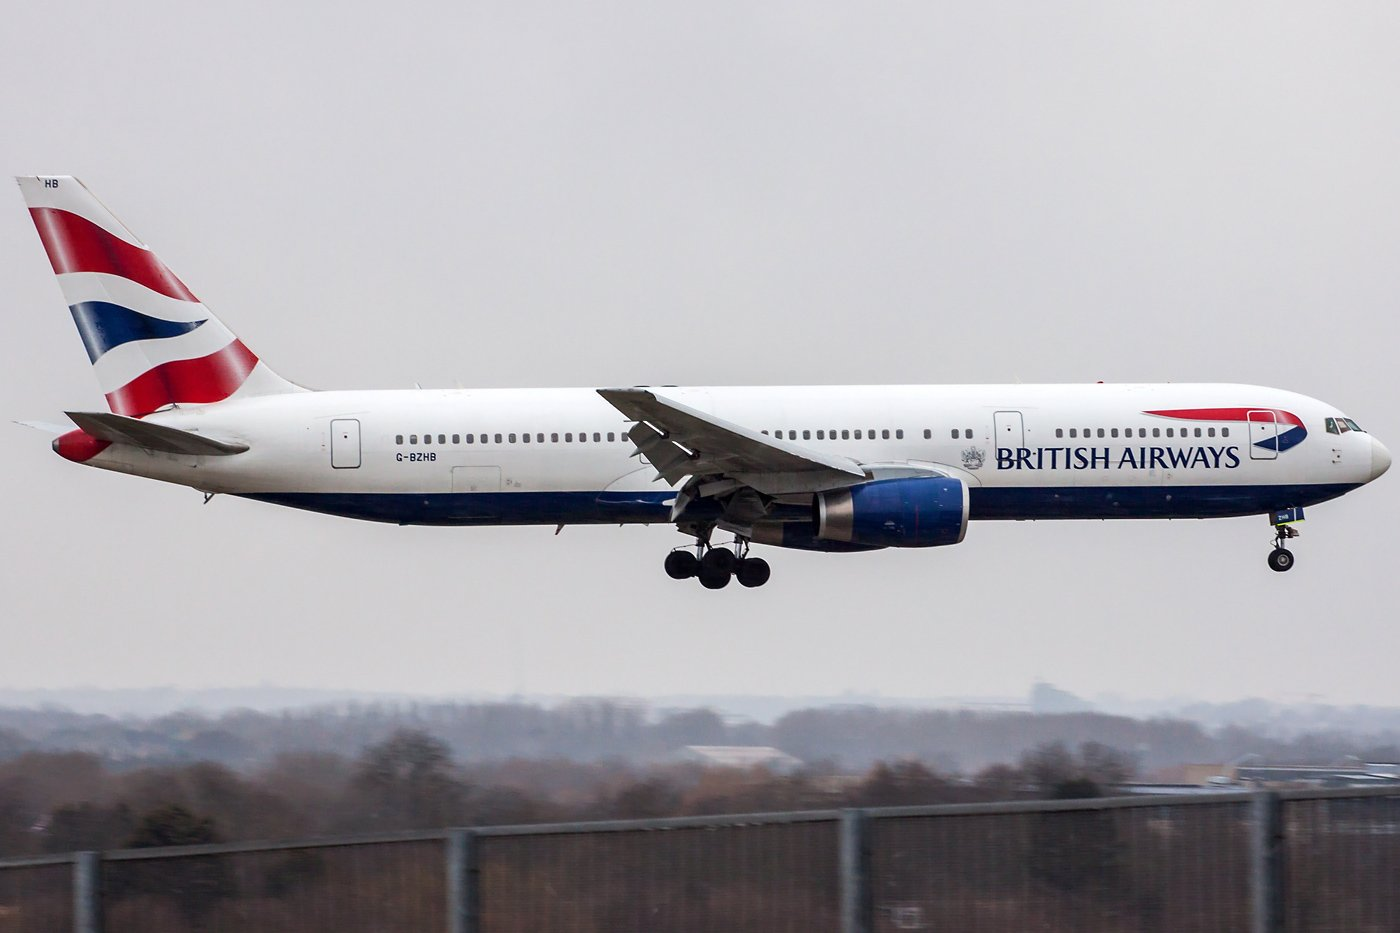 British Airways Boeing 767-336(ER) G-BZHB